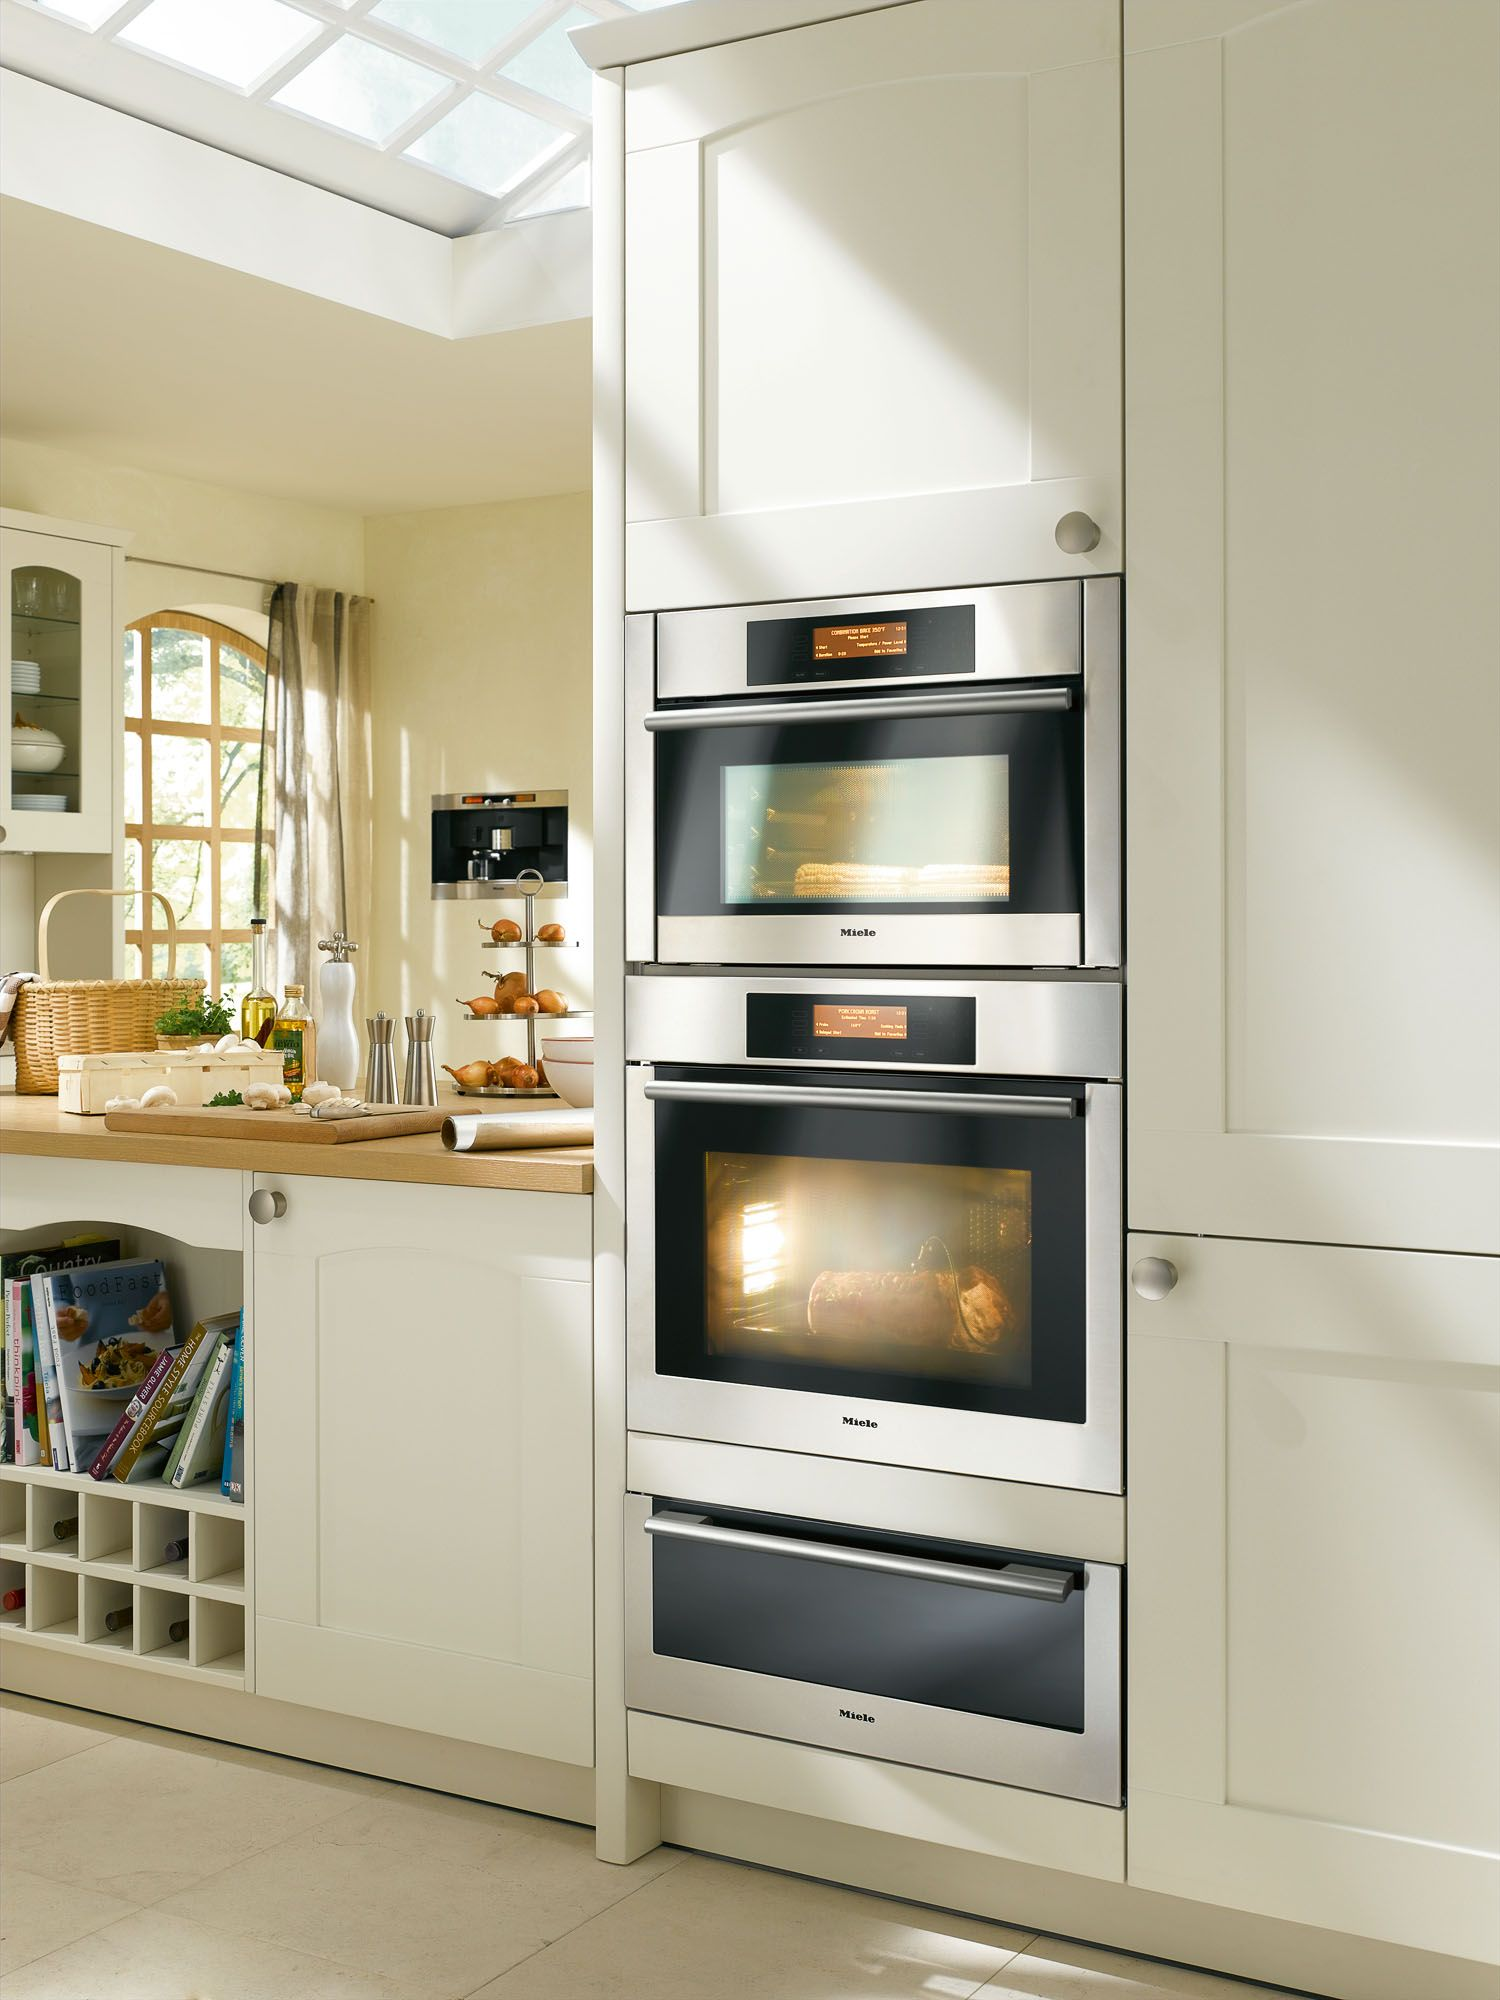 Miele Kitchen Design Built In Miele Ovens Vertical Tower Decorate Kitchen